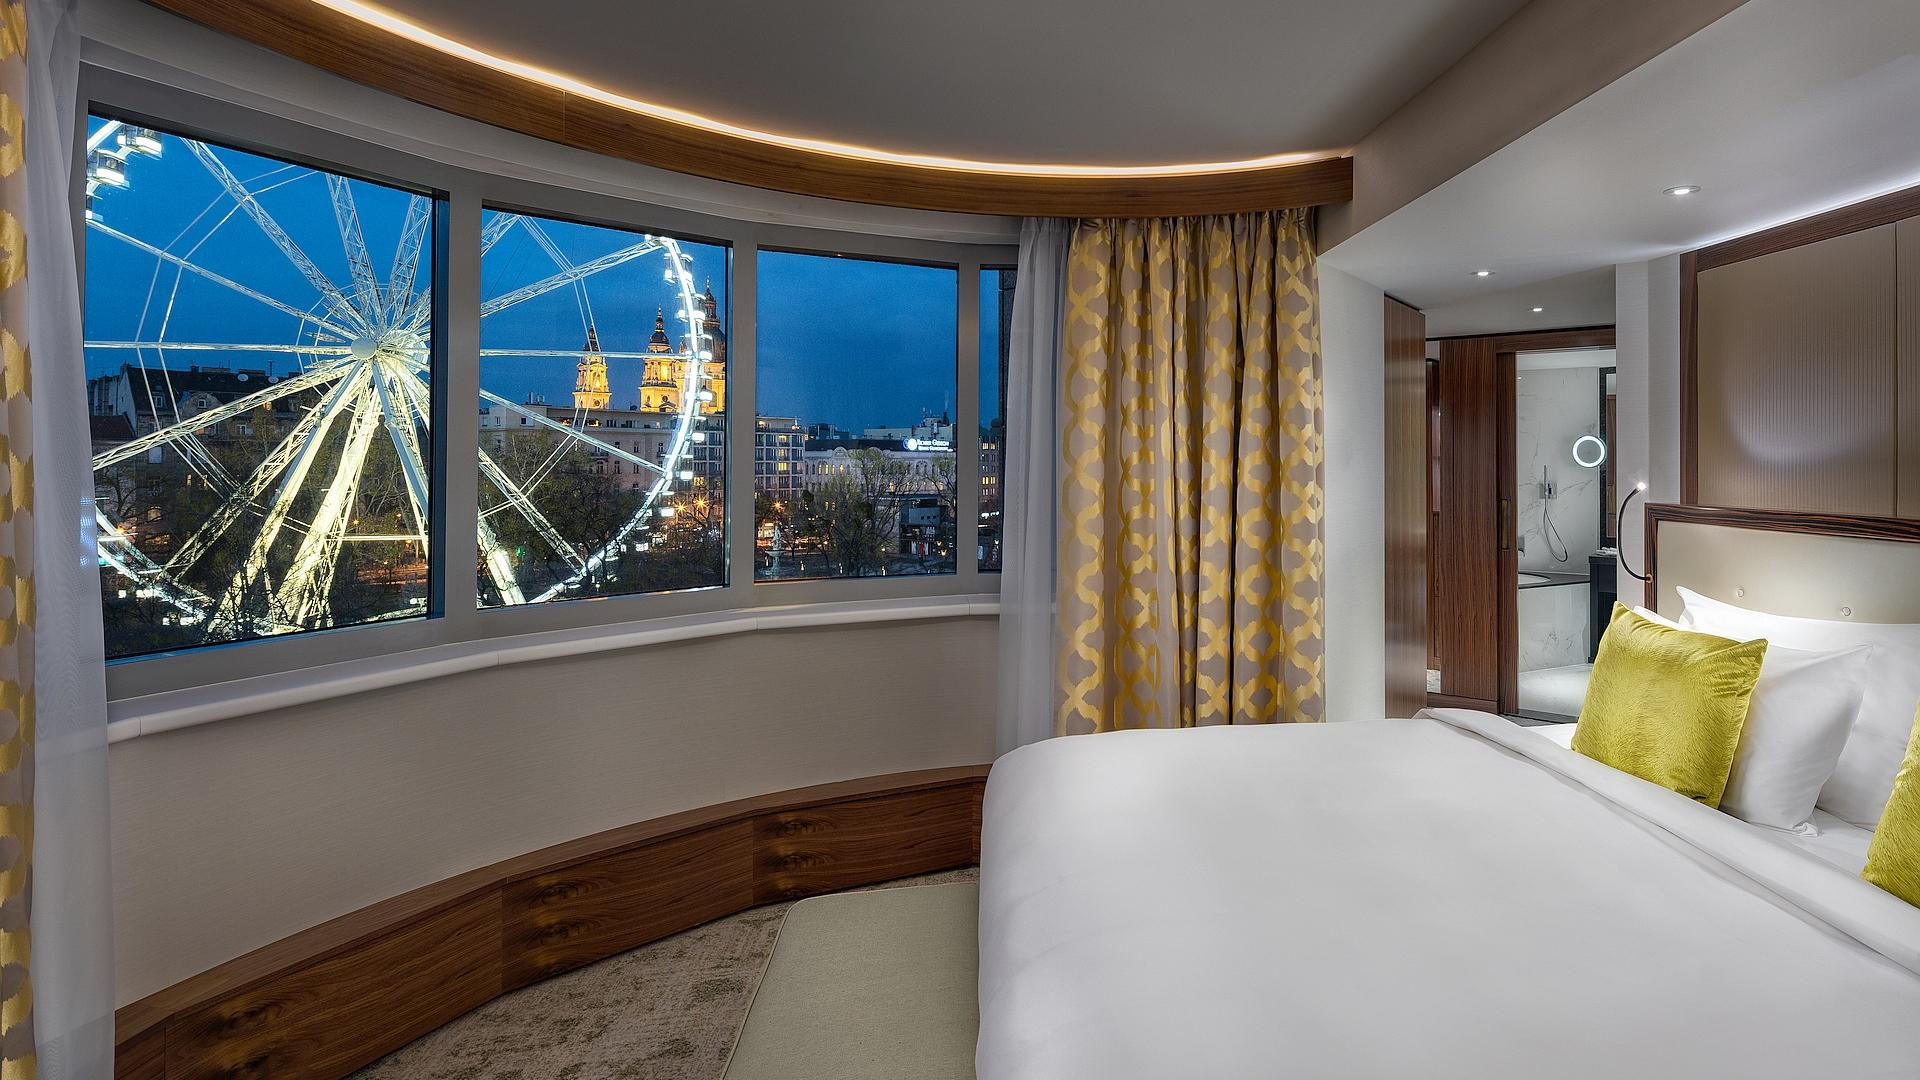 Executive Suite Bedroom by night | Kempinski Hotel Budapest